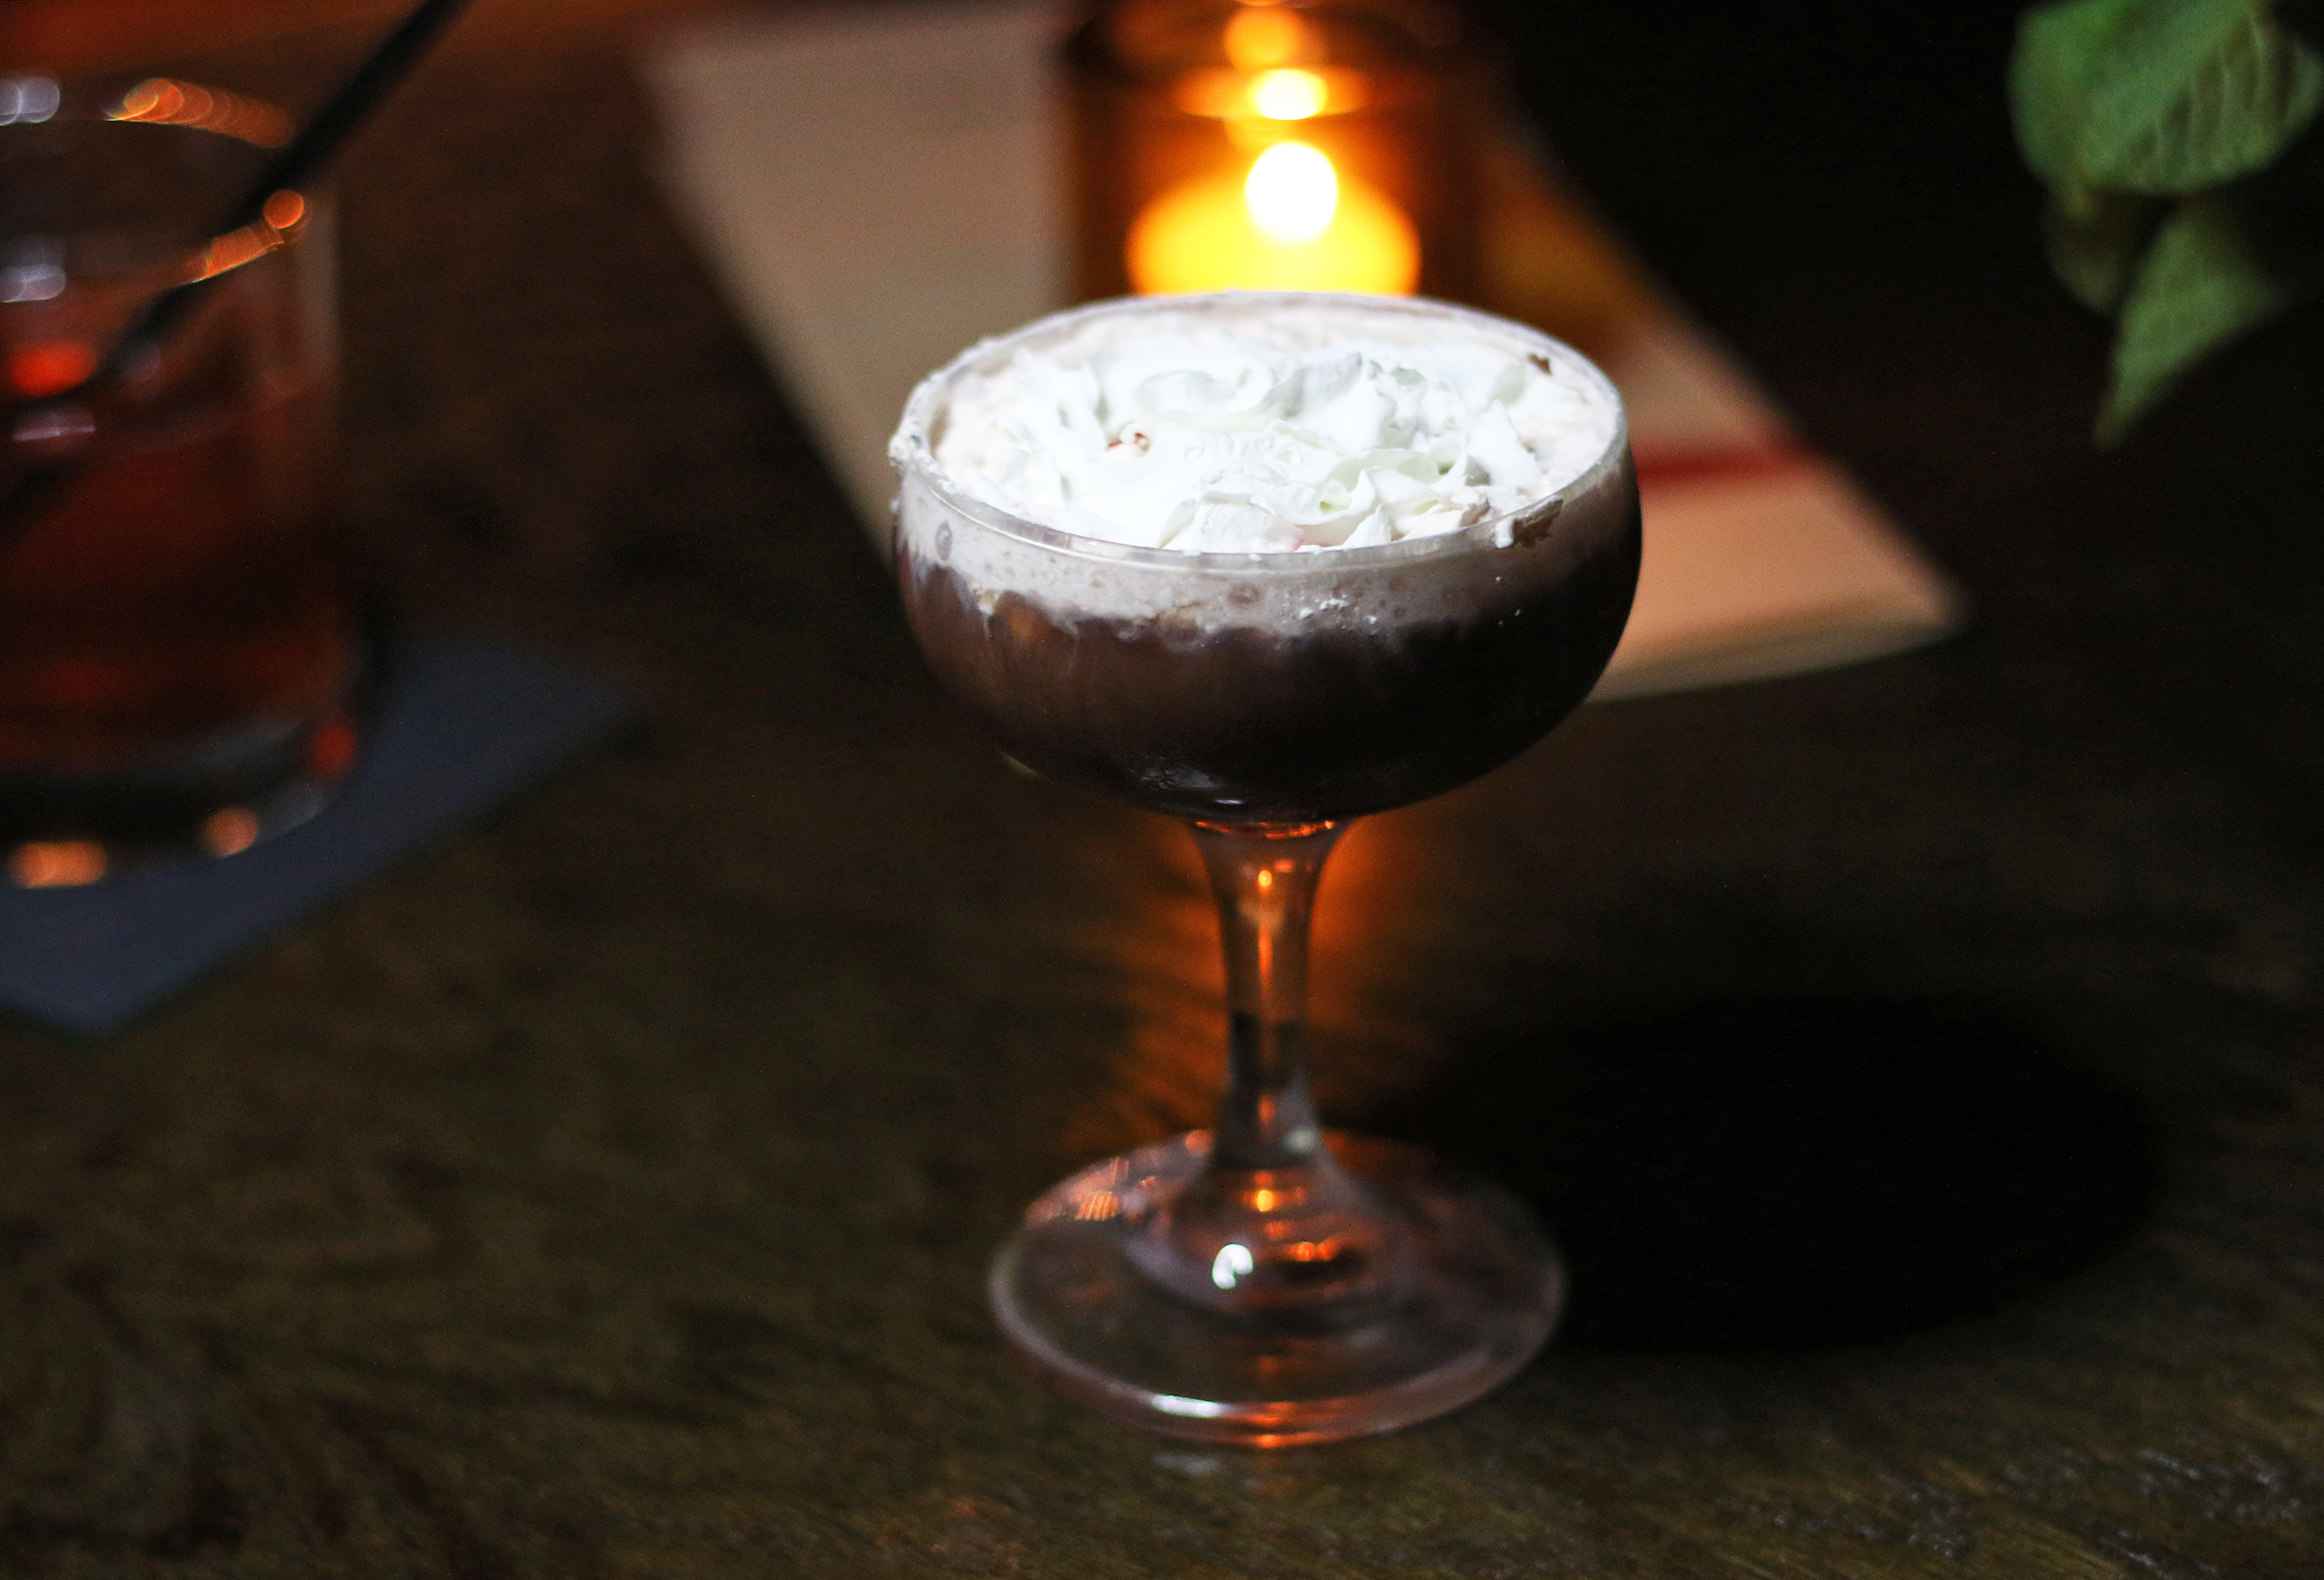 The Peppermint: Absolut Vodka, Meletti Cioccolato, Giffard Menthe Pastille